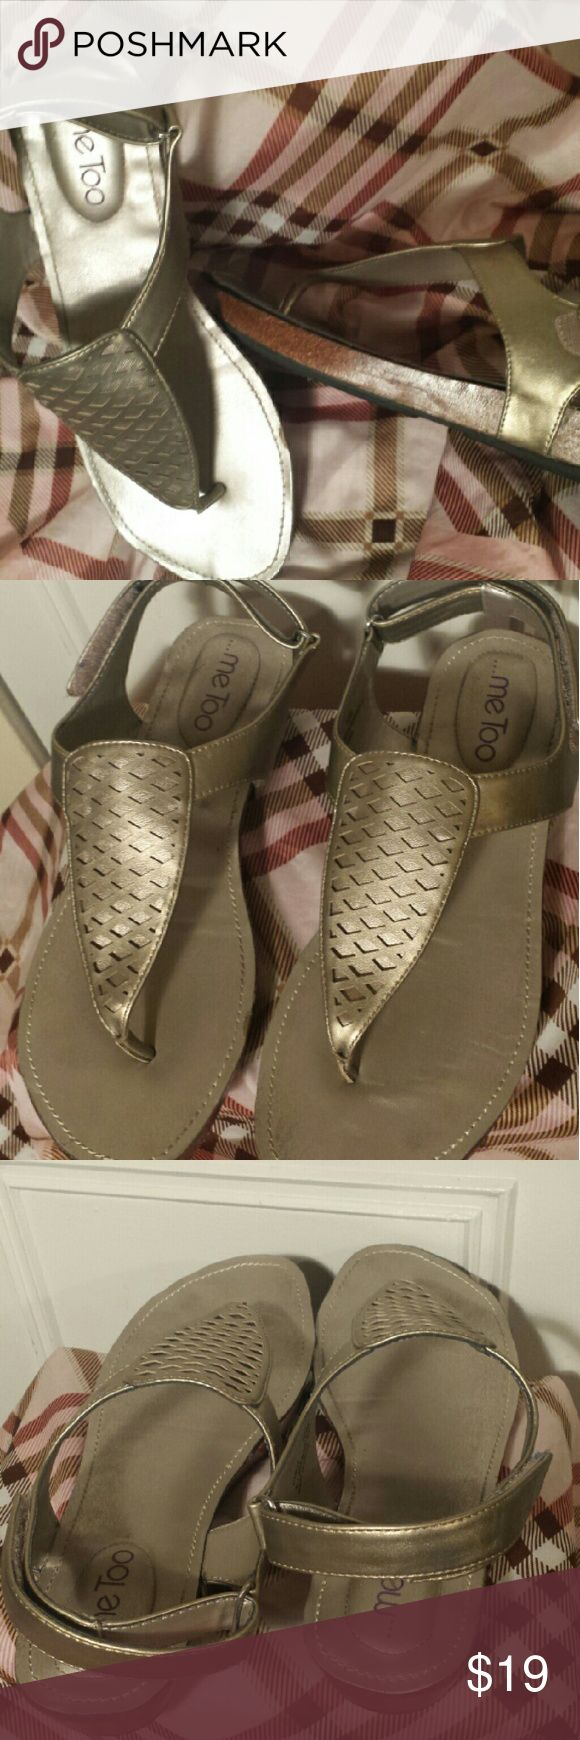 Me too Pewter Sandals.Sz.10M Super cute thong sandals by Me Too. Nice pewter metallic goldish color  Laser-cut details  velcro Loop closure  cushioned insoles. super comfortable!   Havent worn them in 2 Summer. They're in excellent condition retail $49    ************** No low ball offers will be acknowledged n No trades **************   happy poshing!! me too Shoes Sandals